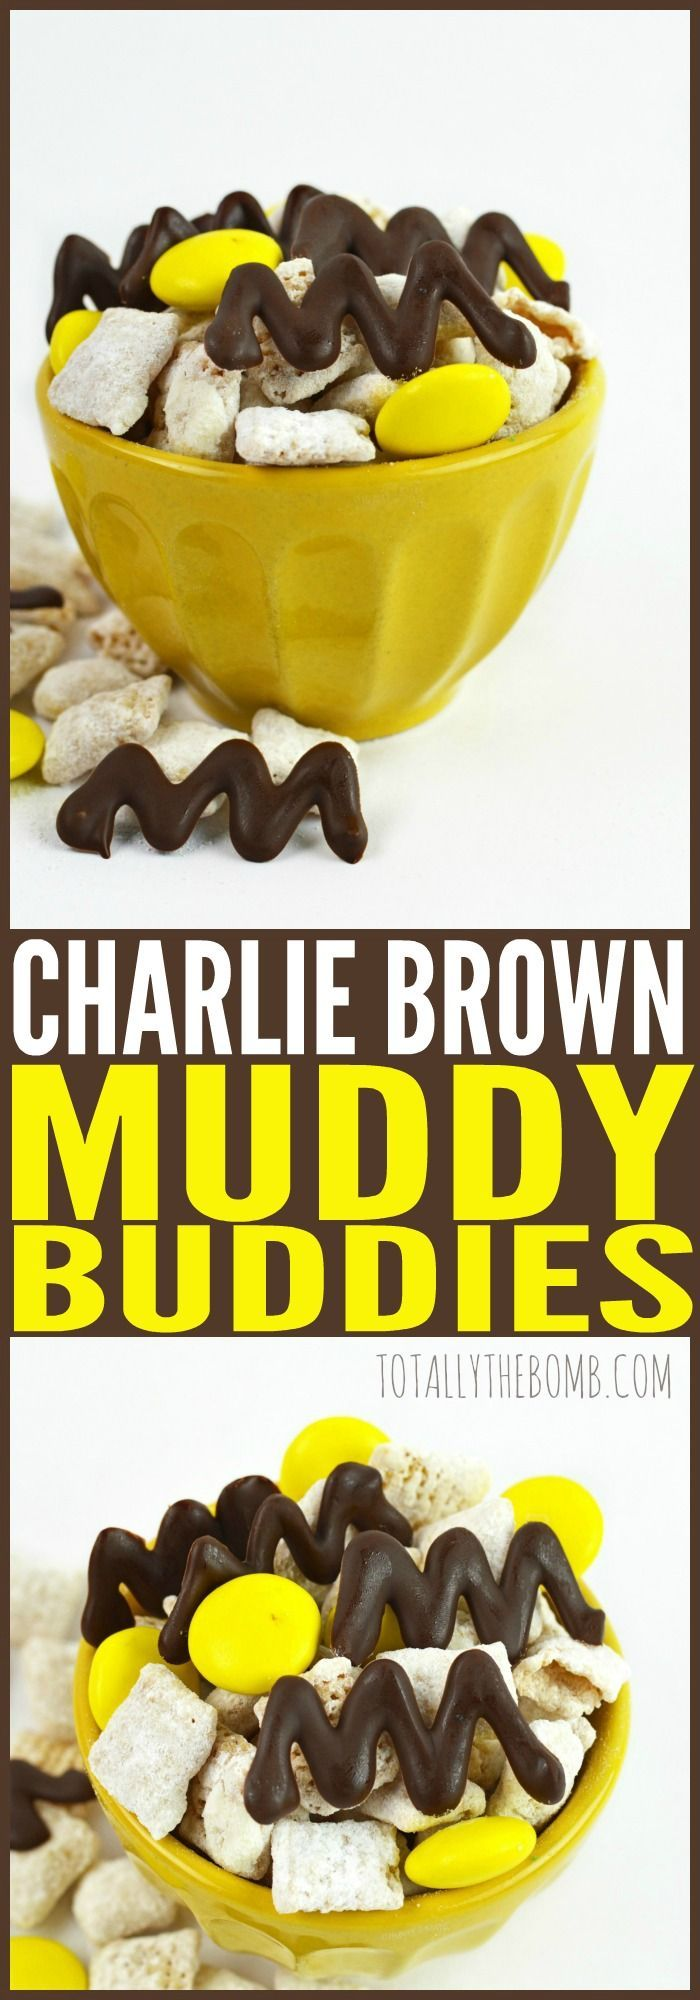 How adorable is this Charlie Brown Muddy Buddy recipe!   The perfect snack for a Peanuts movie night or themed birthday party. Even substitute the cereal for popcorn to make it extra fun :)